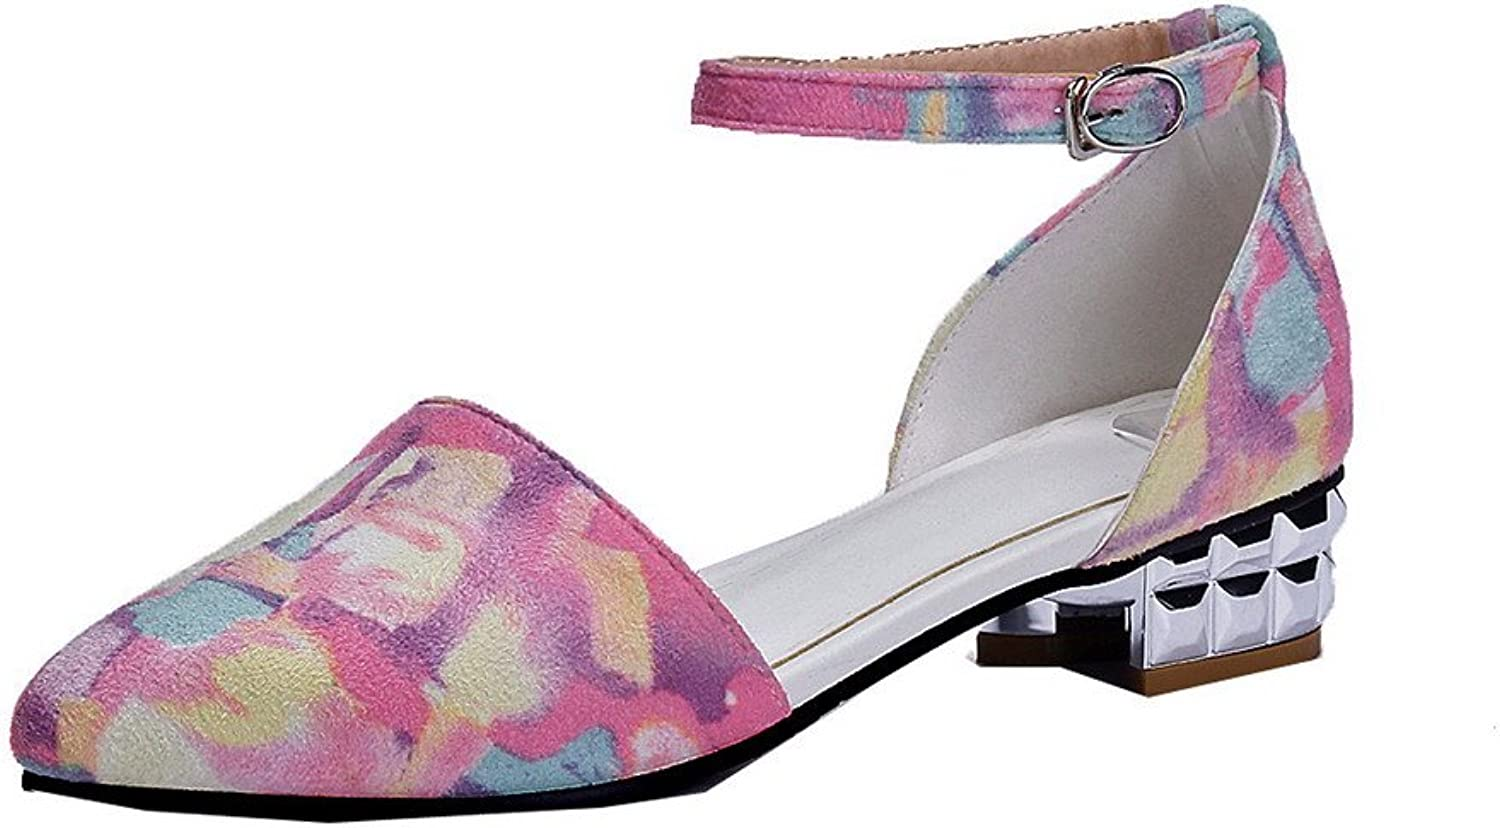 AllhqFashion Women's Closed Toe Low-Heels Frosted Solid Buckle Sandals